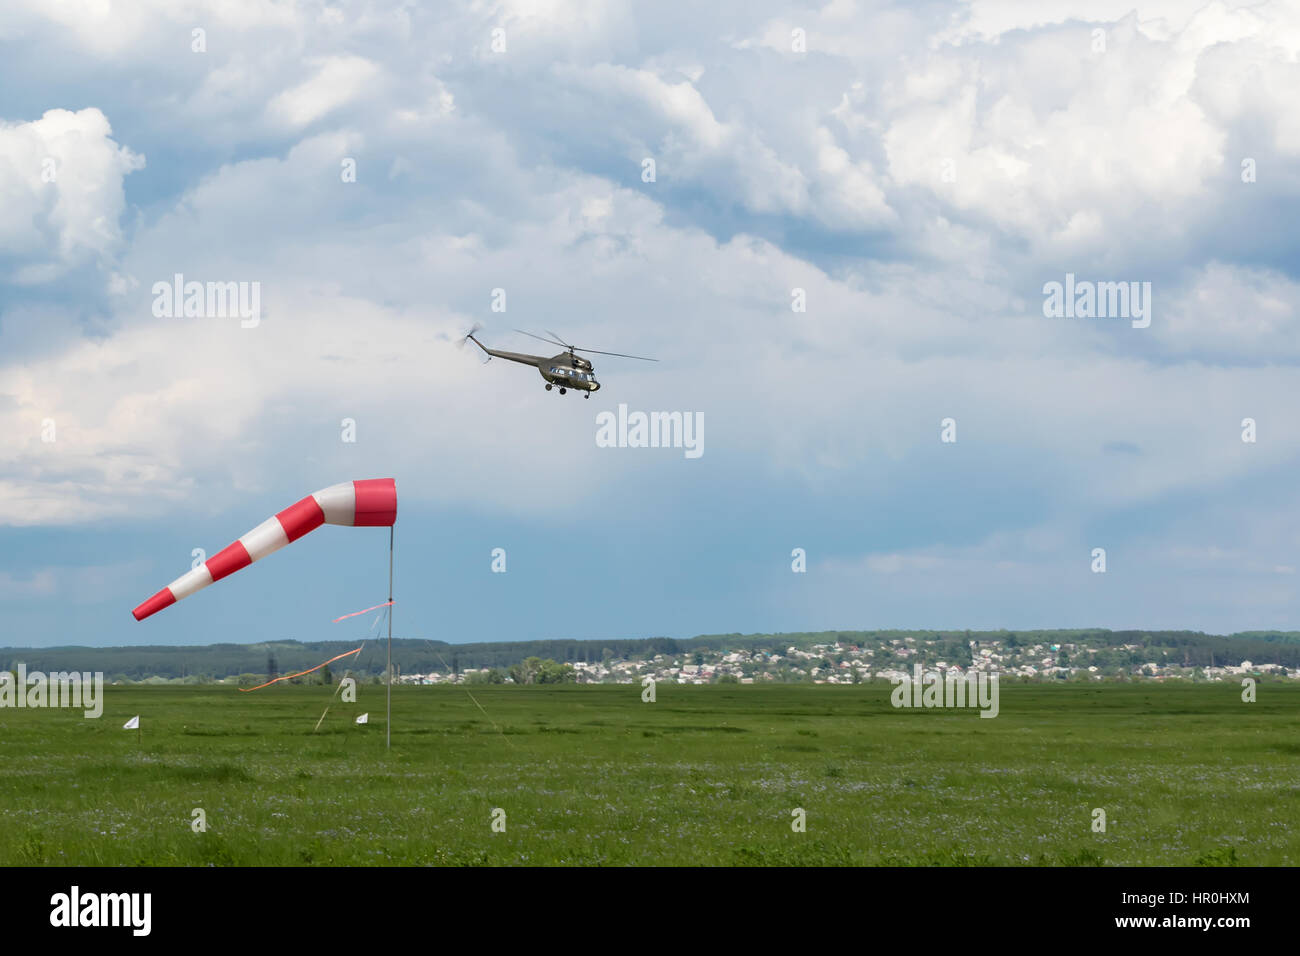 Green military helicopter flies near the ground next to a weather vane - Stock Image